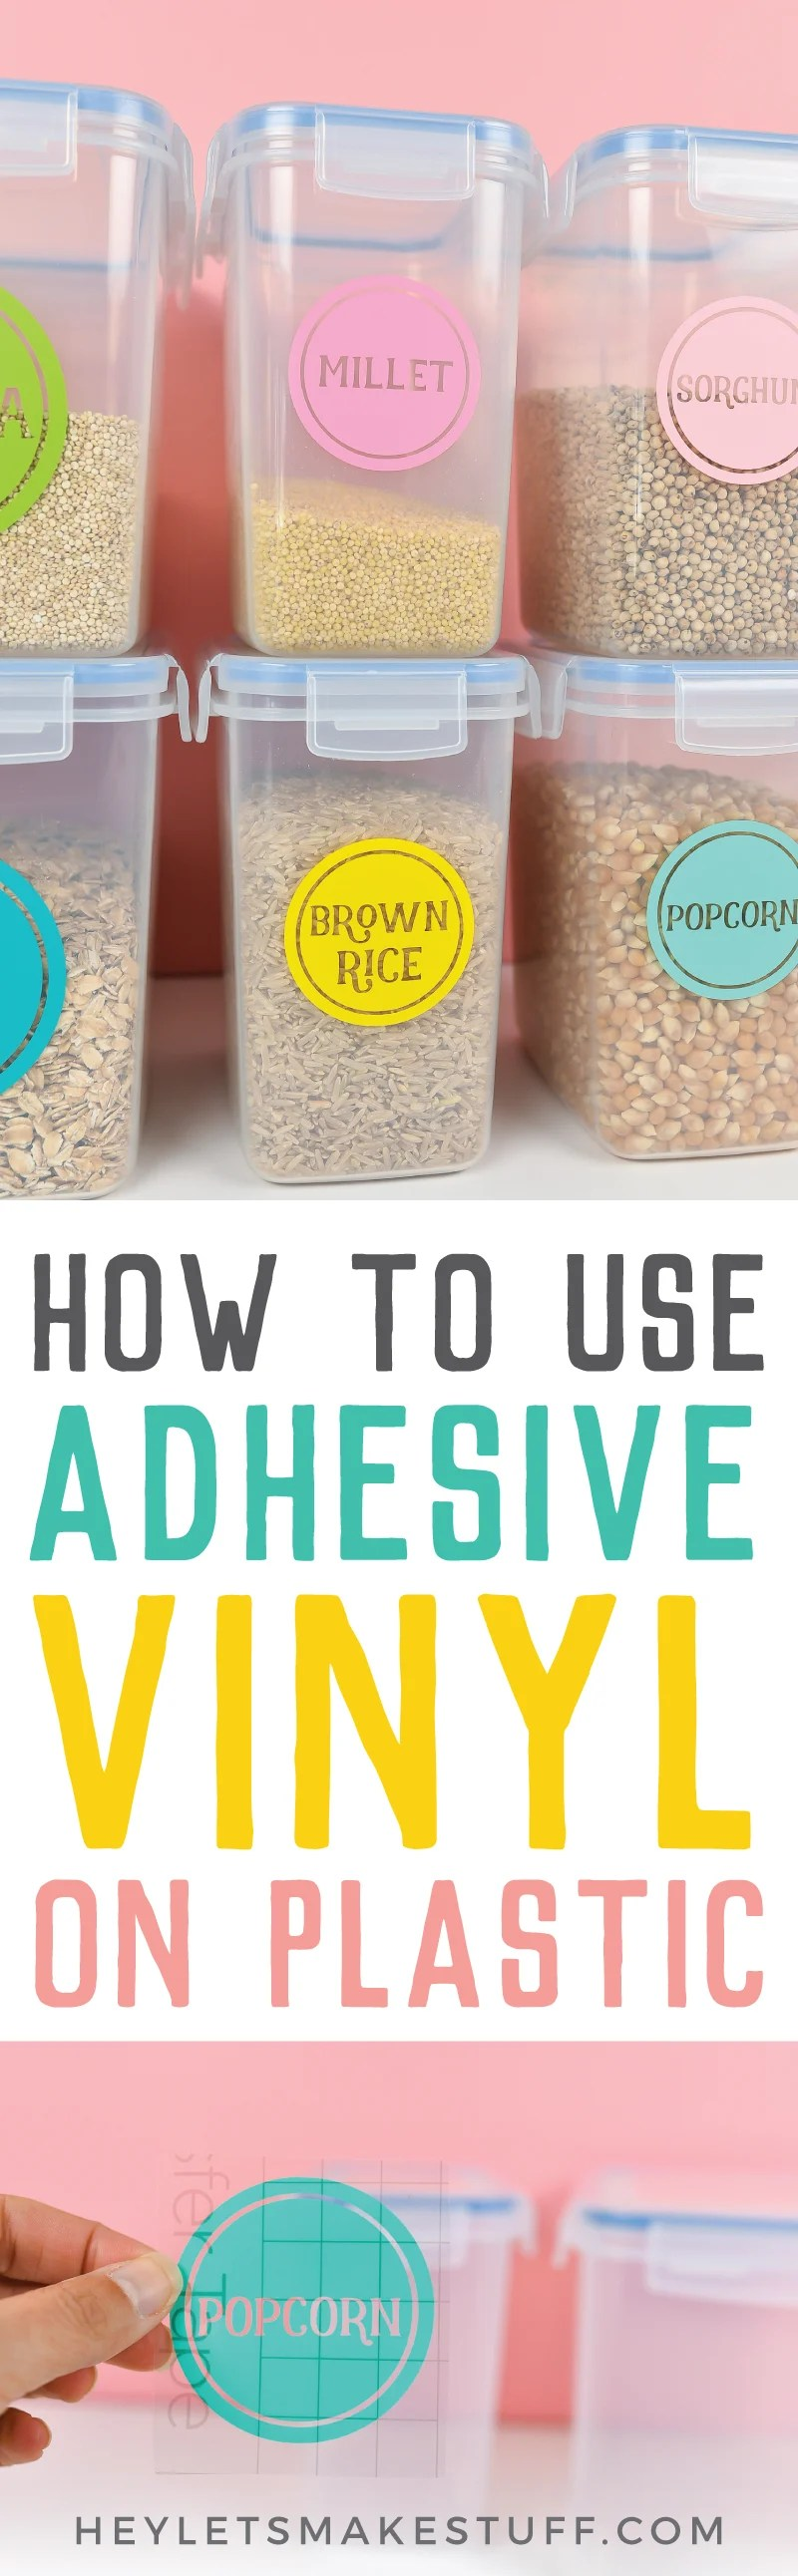 Plastic can be one of the easiest surfaces for adhesive vinyl! This application is perfect for pantry labels and other organization around your home—get all my best tips and tricks for using vinyl on plastic.  via @heyletsmakestuf